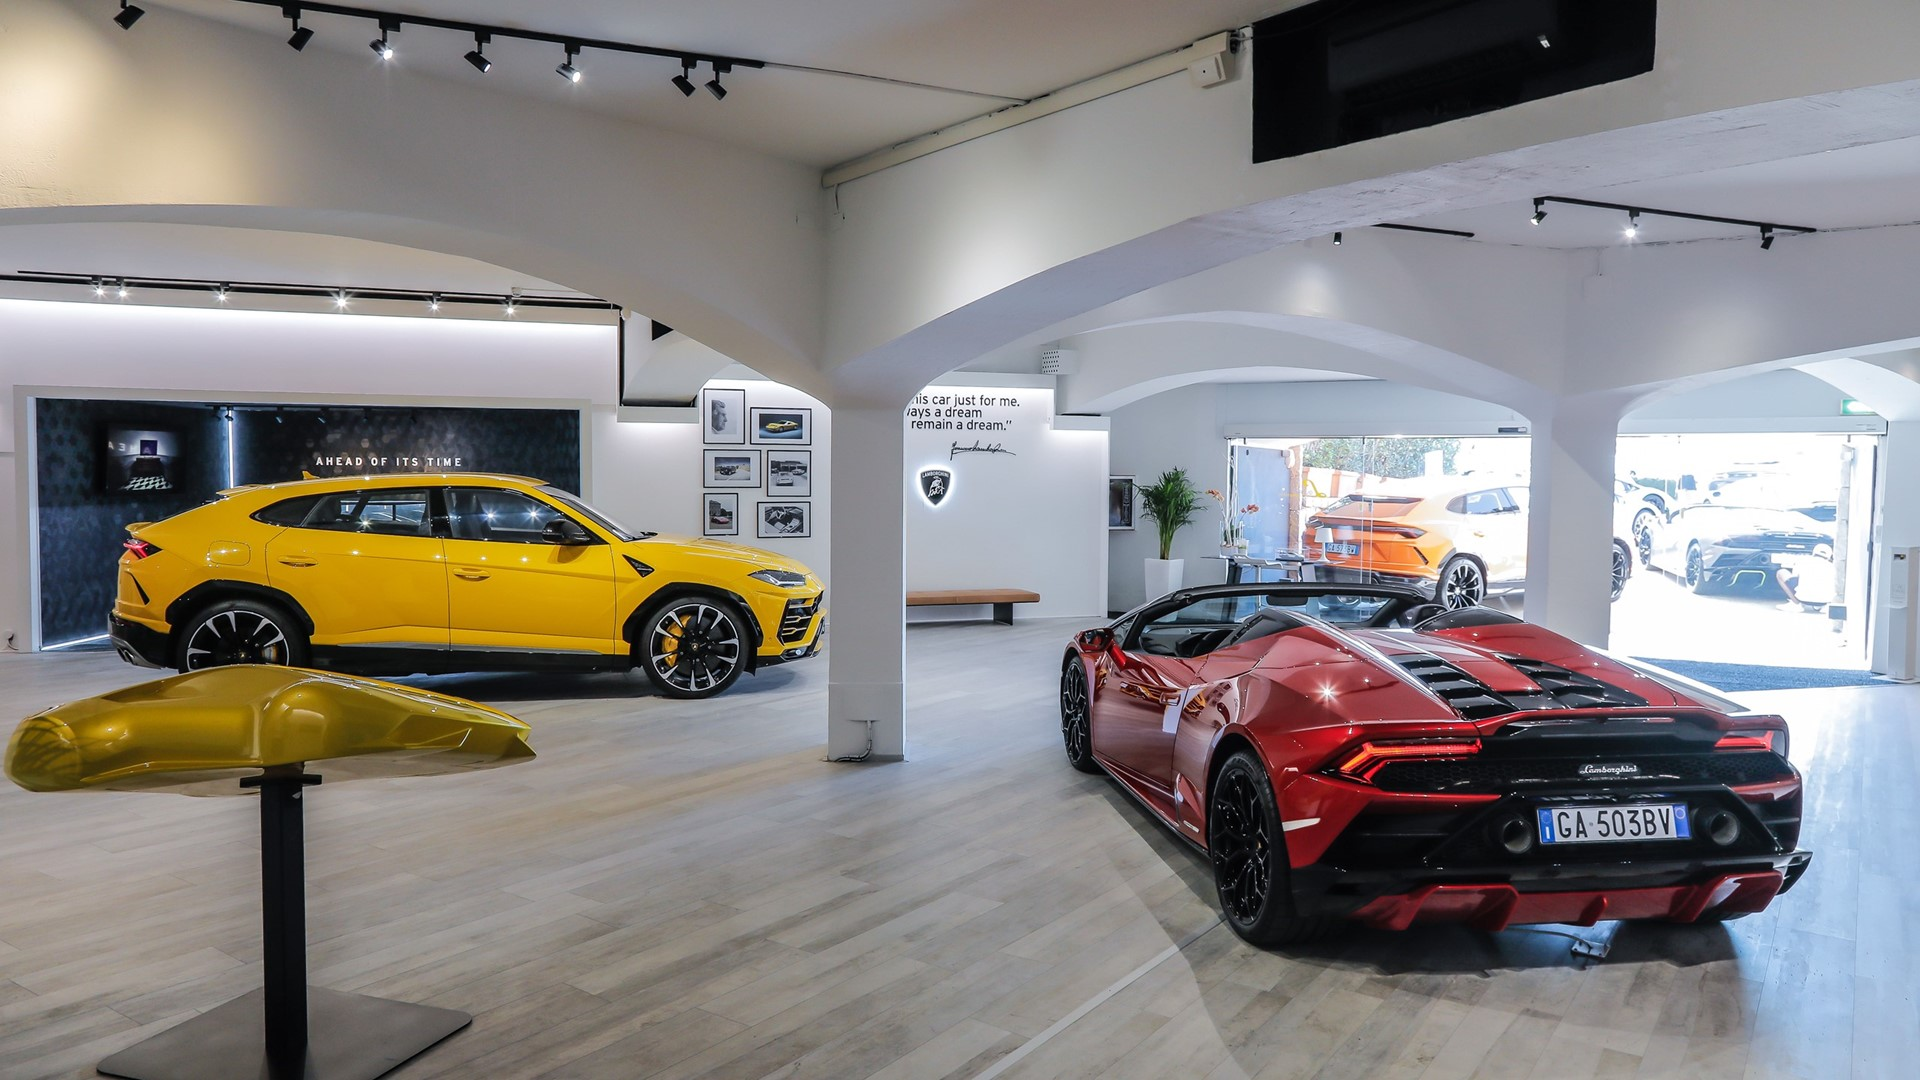 Lamborghini Lounge returns to Porto Cervo: live premier of Huracán EVO RWD Spyder with an exclusive Colours and Stars dinner by Mauro Colagreco. - Image 1